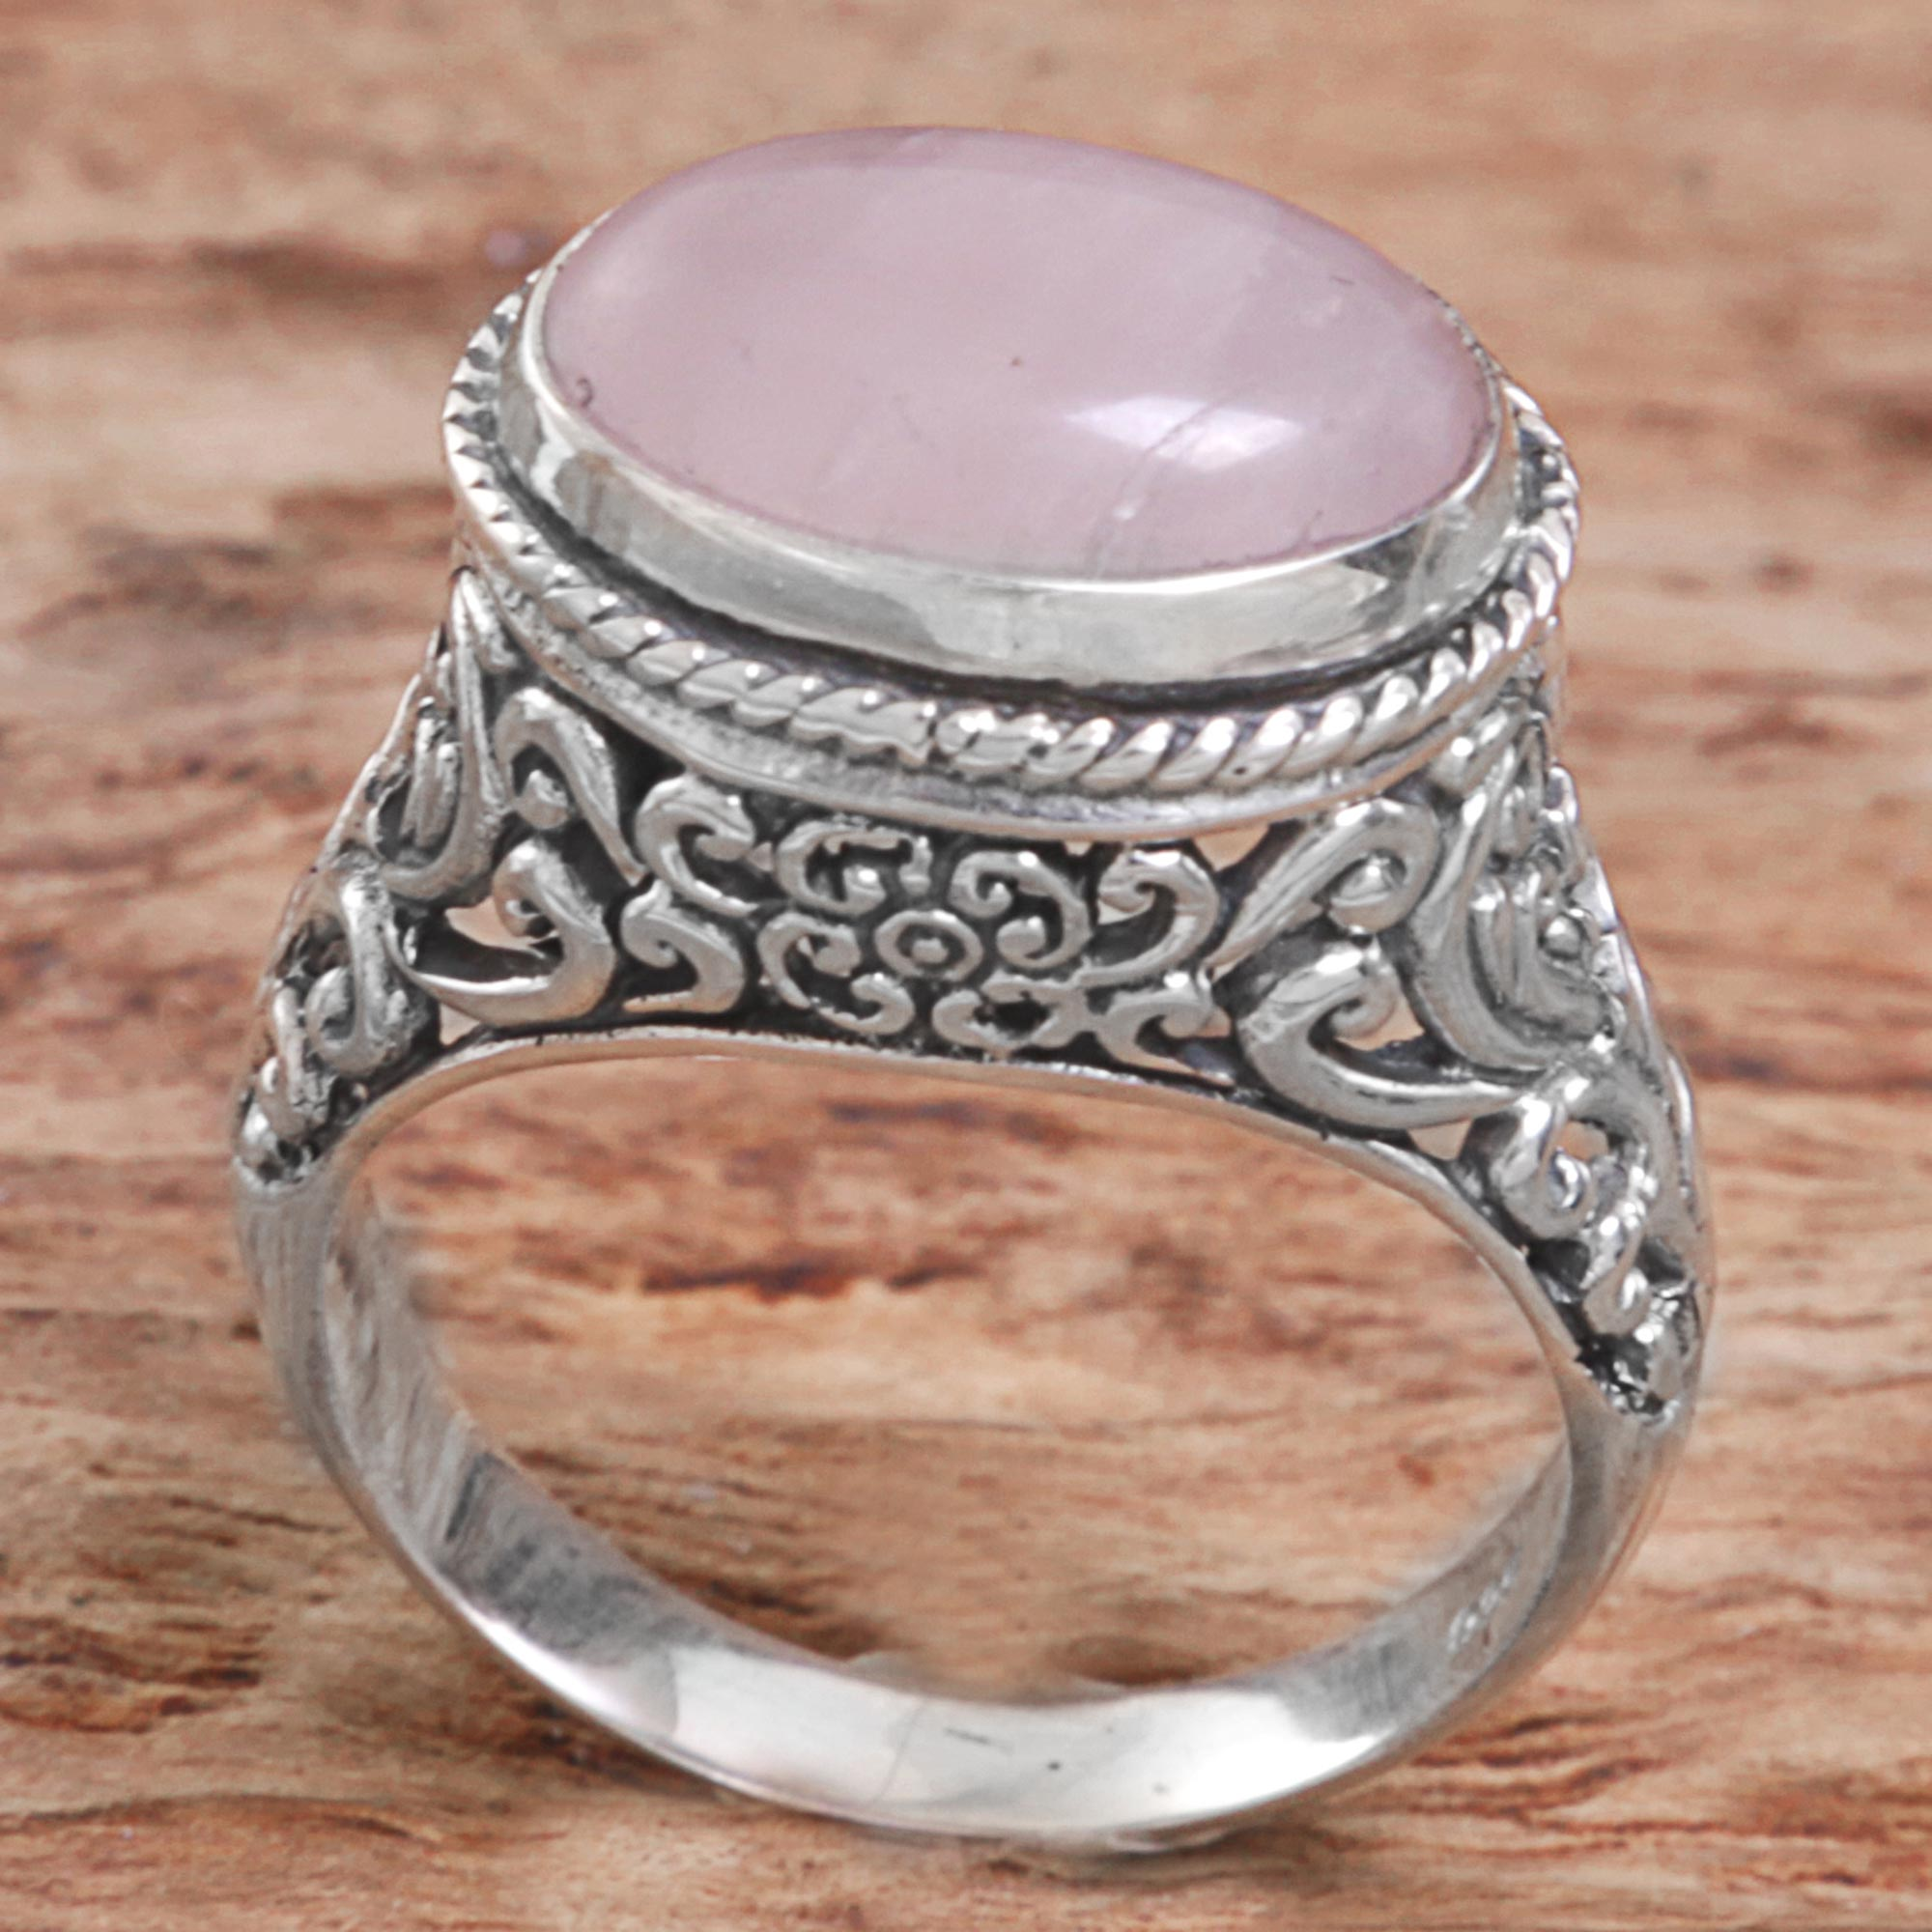 oval rings product sides pink side design view with stone silver ornate scroll sterling ring